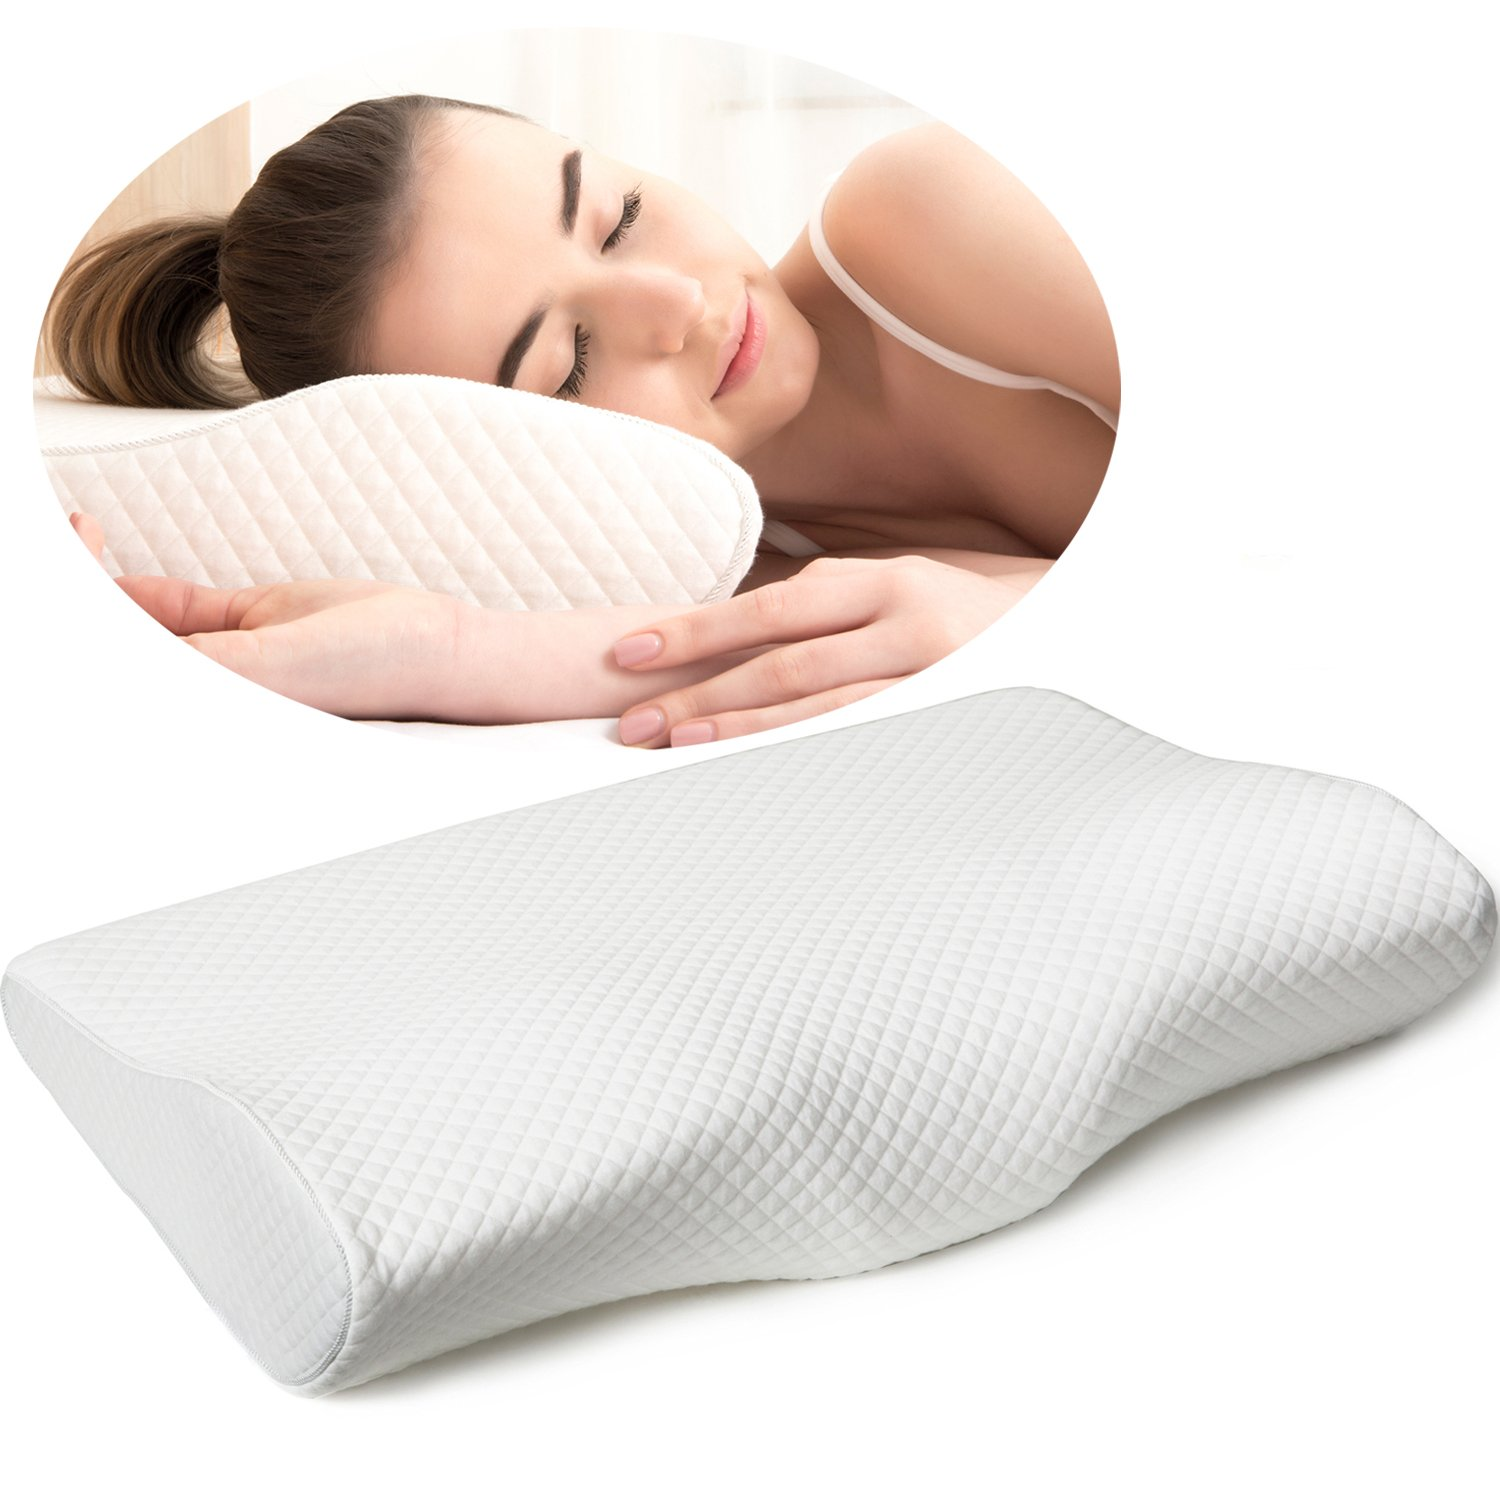 cushion for pillow pain itm shaped memory foam relief neck butterfly cervical rebound